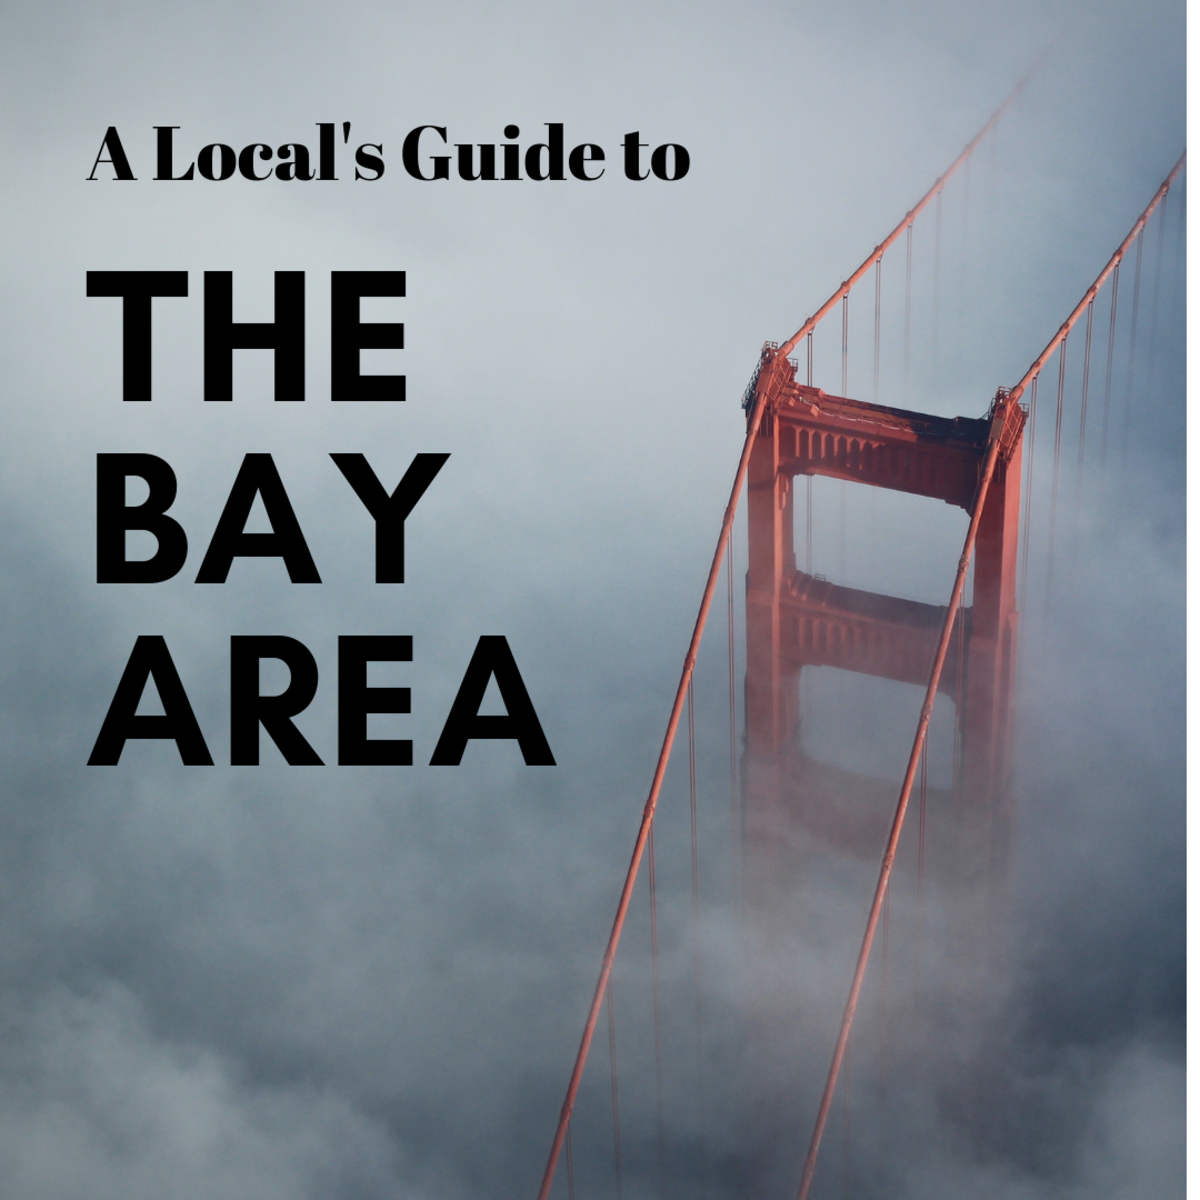 A Local's Guide to Touring Silicon Valley and the Bay Area